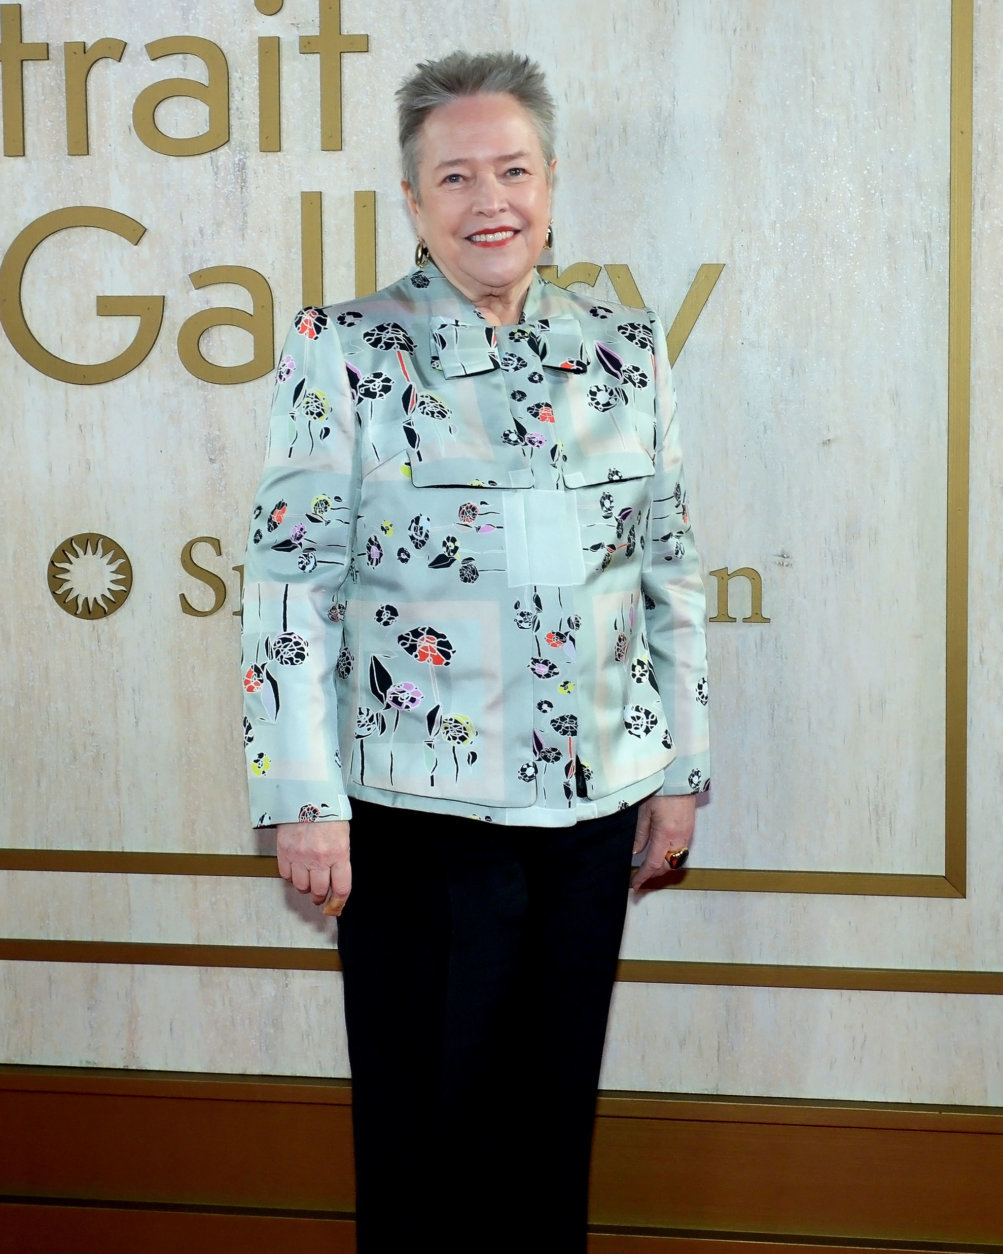 """<p>Other celebrity guests included actress Kathy Bates.</p> <p>The Portrait of a Nation Prize celebrates exemplary achievements in the worlds of science, performing arts, business, fashion and media. The American Portrait Gala was established in 2015 as a fundraiser to strengthen the museum's endowment for exhibitions and focus attention on the museum's work with living sitters and contemporary artists.</p> <p>See images of the new portraits <a href=""""https://wtop.com/gallery/dc/new-to-the-national-portrait-gallery-jeff-bezos-lin-manuel-miranda/"""" target=""""_blank"""" rel=""""noopener"""">here</a>.</p>"""